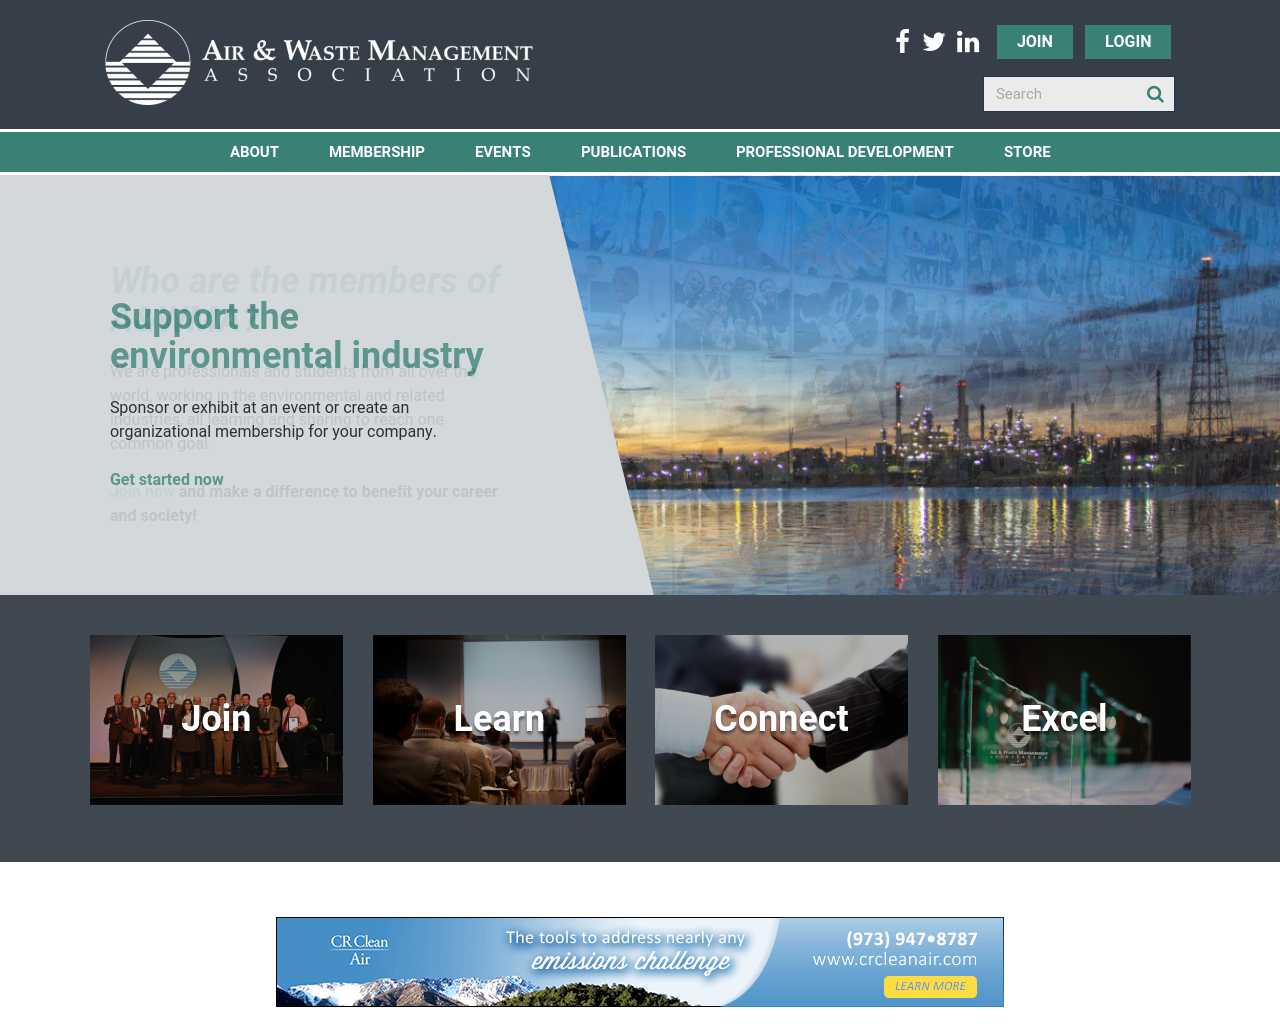 Air-&-Waste-Management-Association-Advertising-Reviews-Pricing